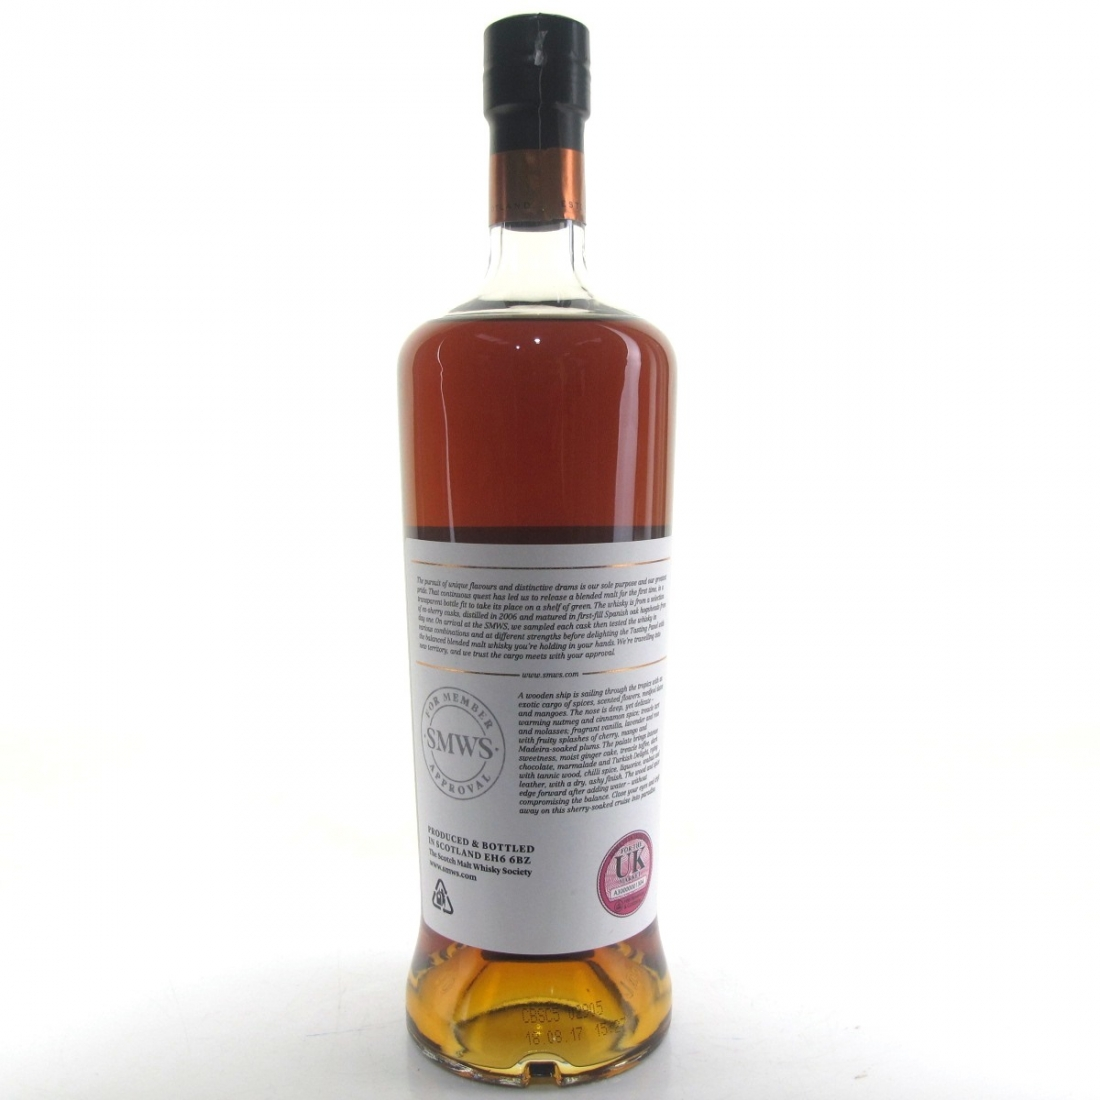 Exotic Cargo 2006 SMWS 10 Year Old Blended Batch 01